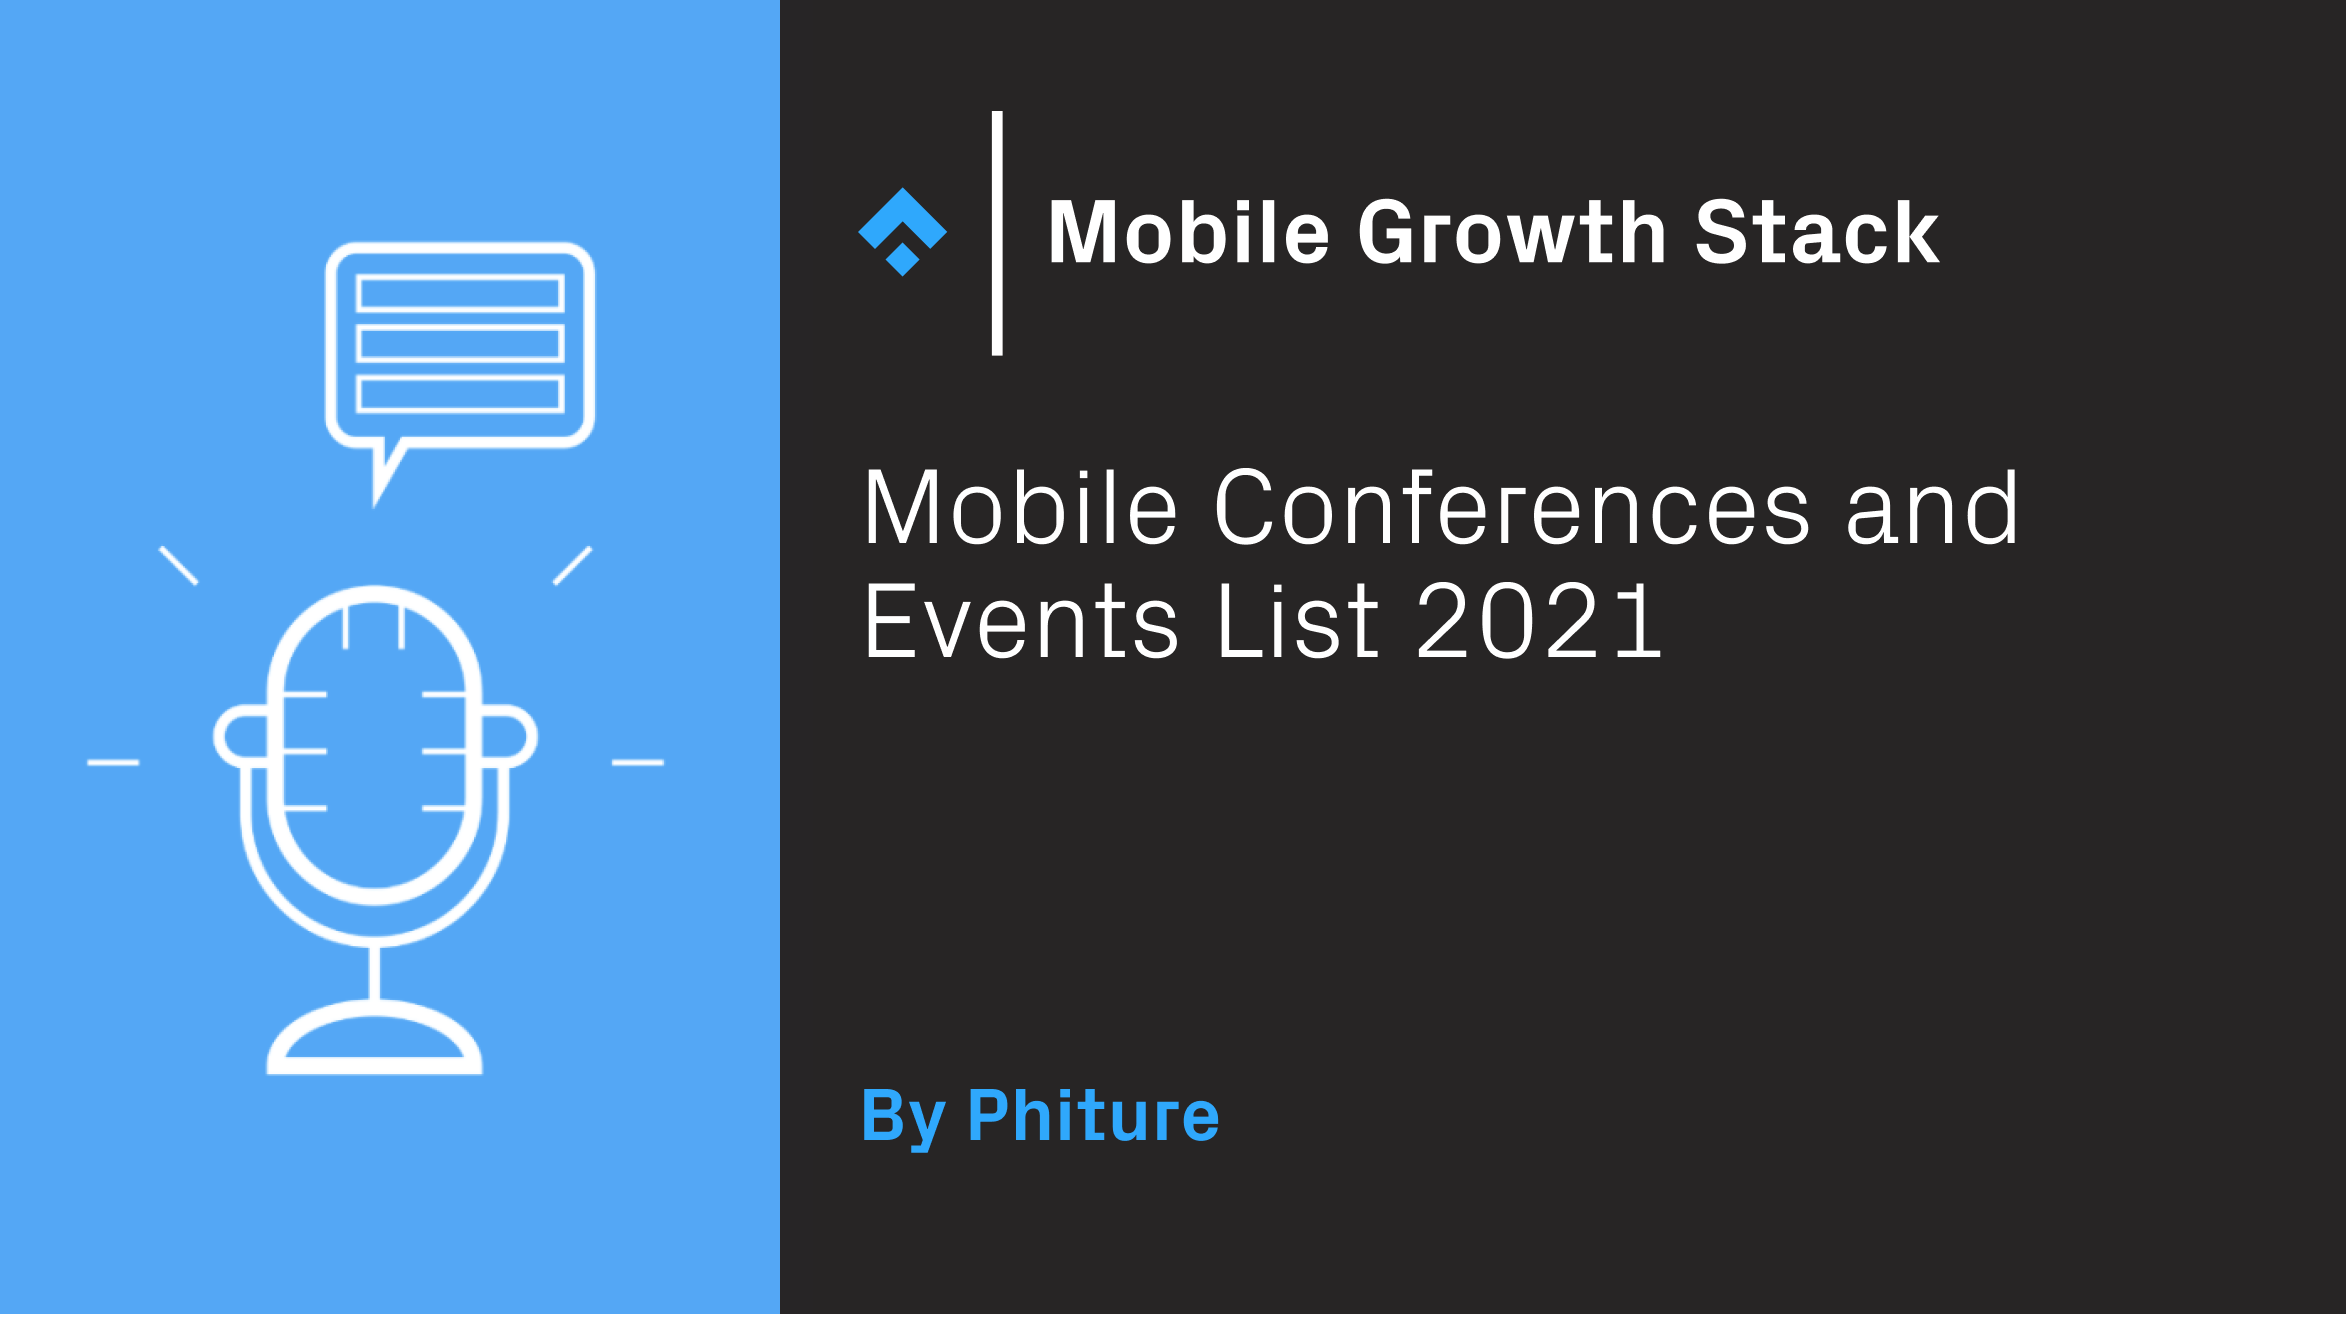 mobile conference and events list 2021